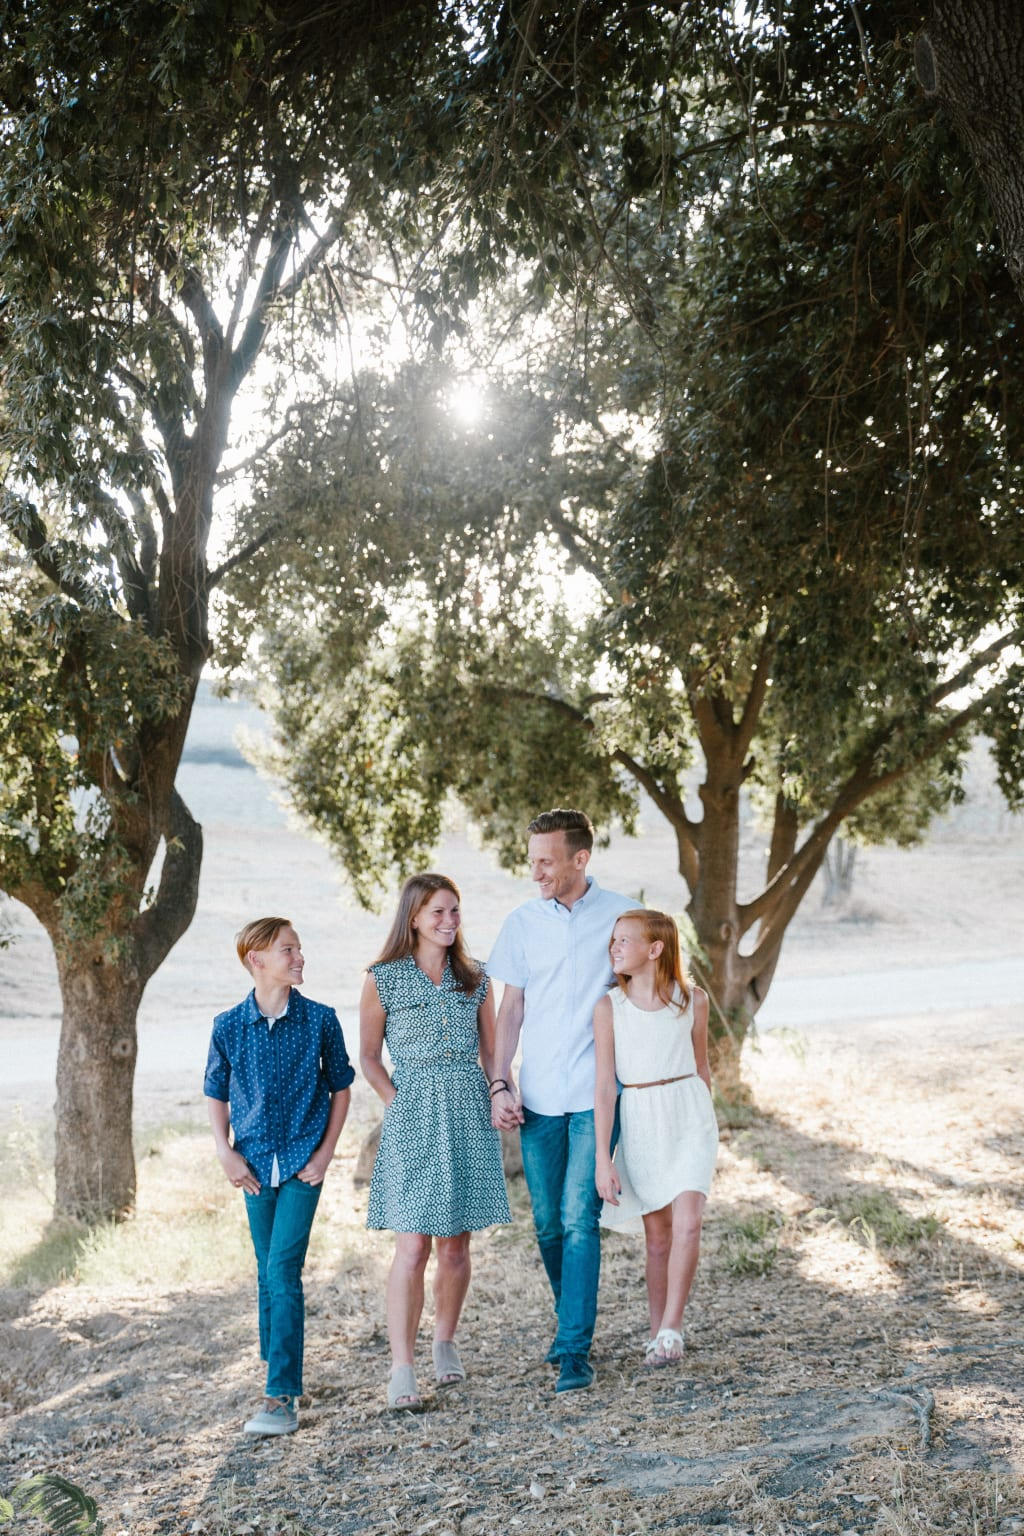 Getting Ready for Family Pictures: What You Should Know